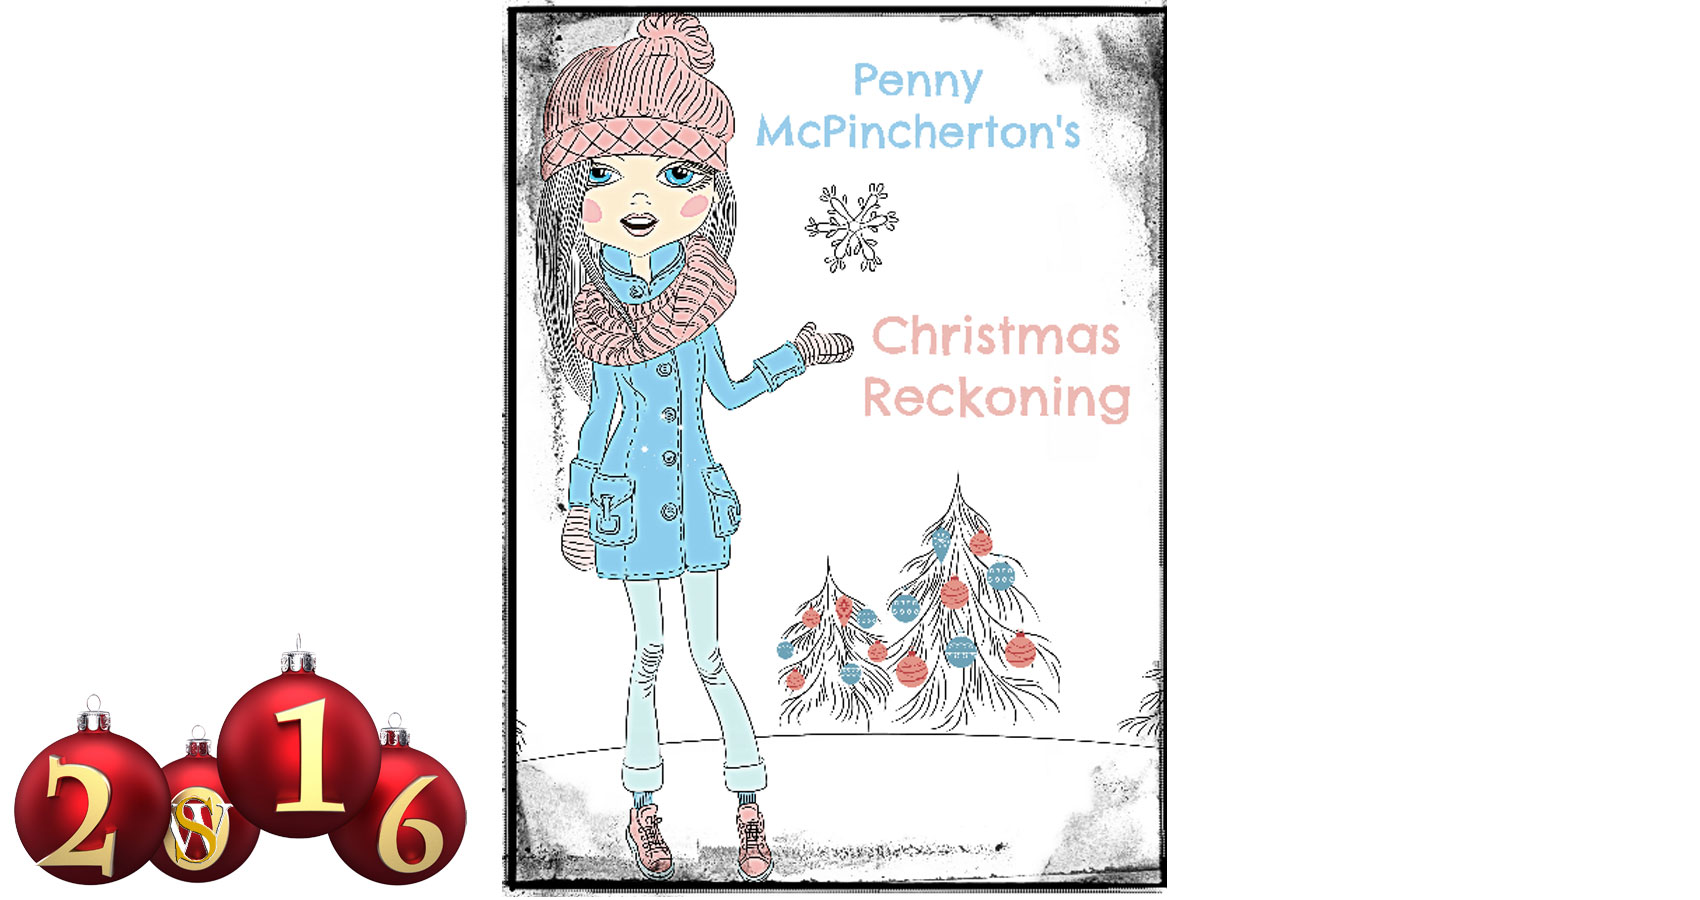 Penny McPincherton's Christmas Reckoning written by Melissa McNallan at Spillwords.com